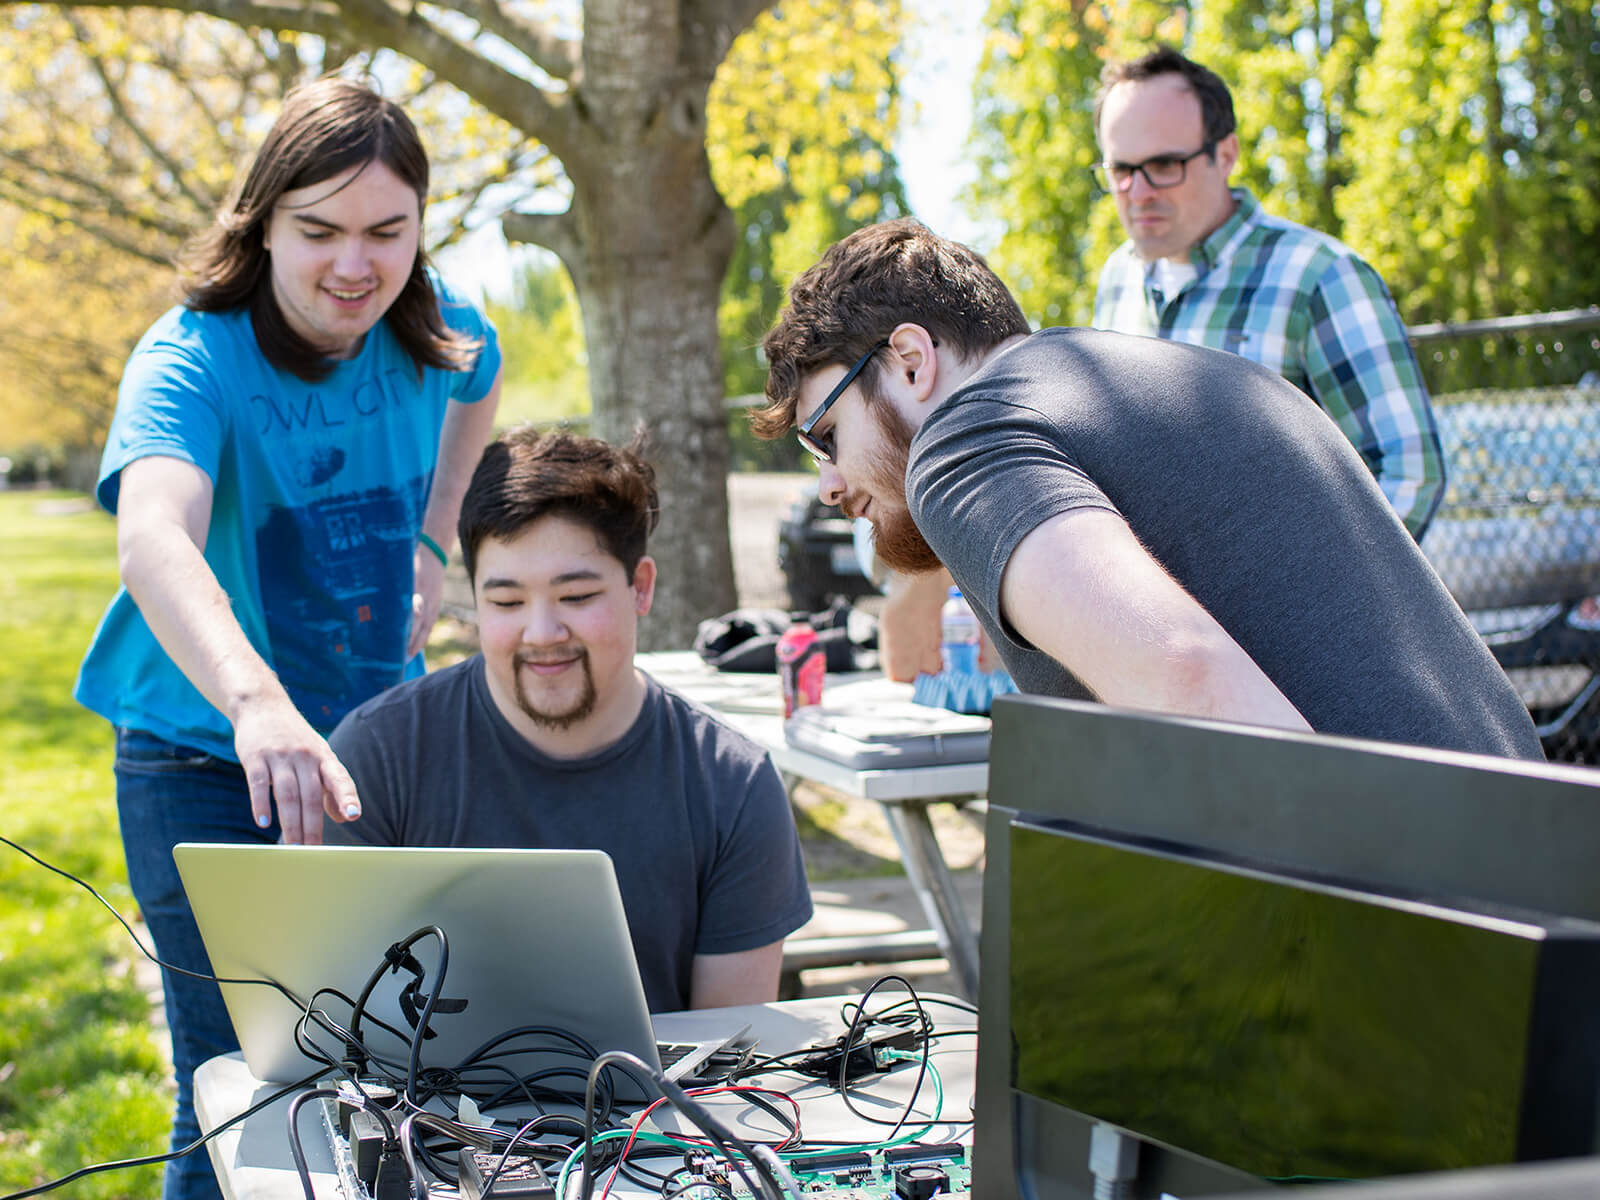 Two students look over the shoulder of another at a laptop computer and radar system set up outdoors in a park.